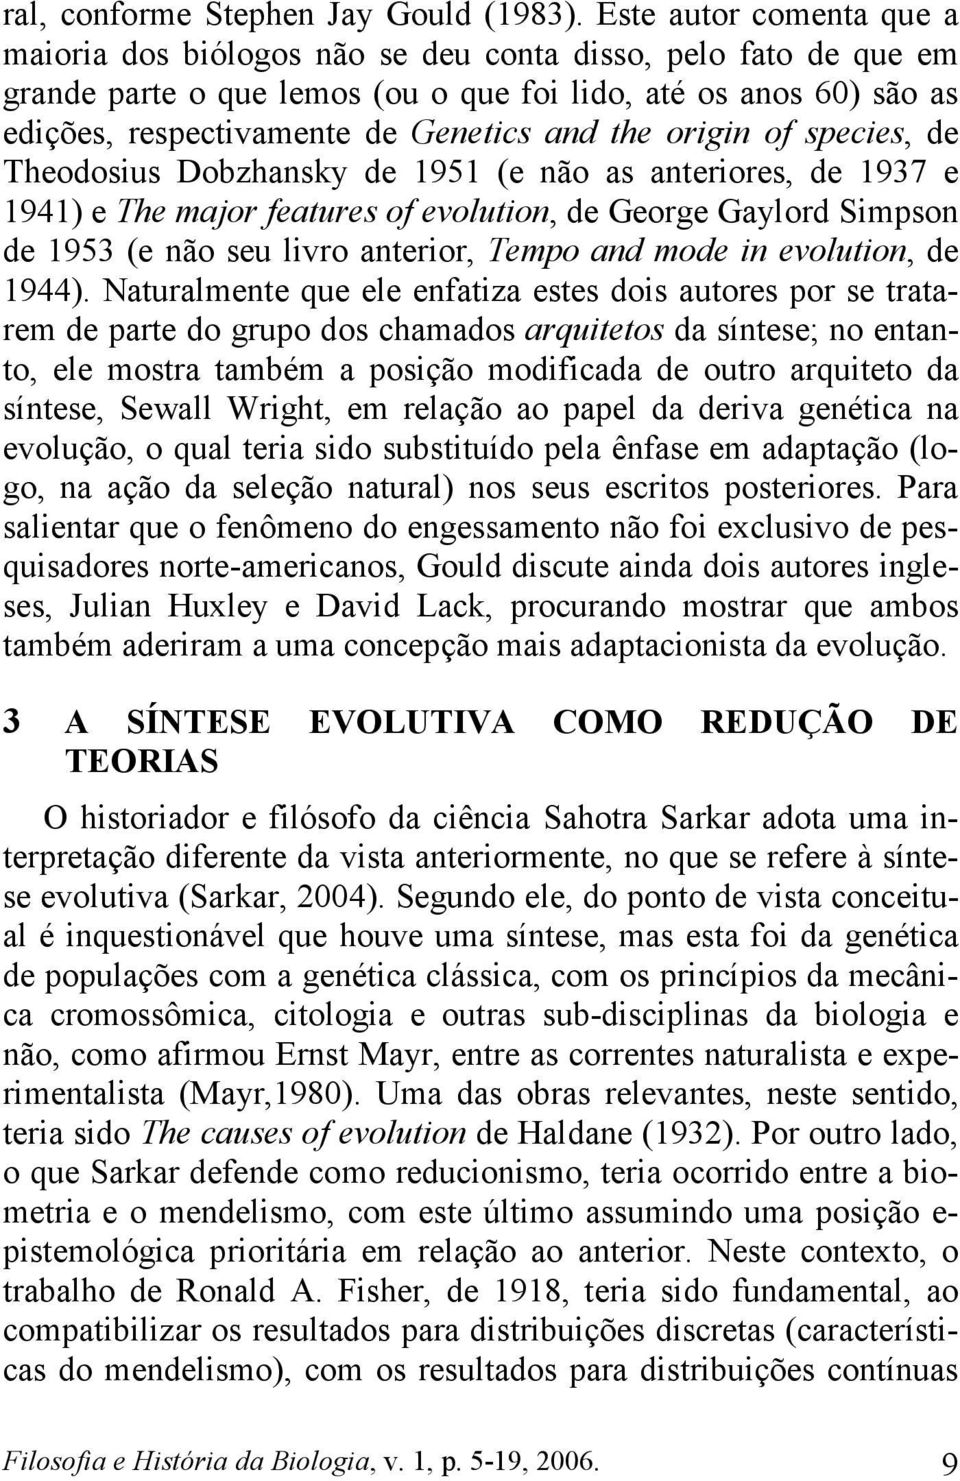 the origin of species, de Theodosius Dobzhansky de 1951 (e não as anteriores, de 1937 e 1941) e The major features of evolution, de George Gaylord Simpson de 1953 (e não seu livro anterior, Tempo and